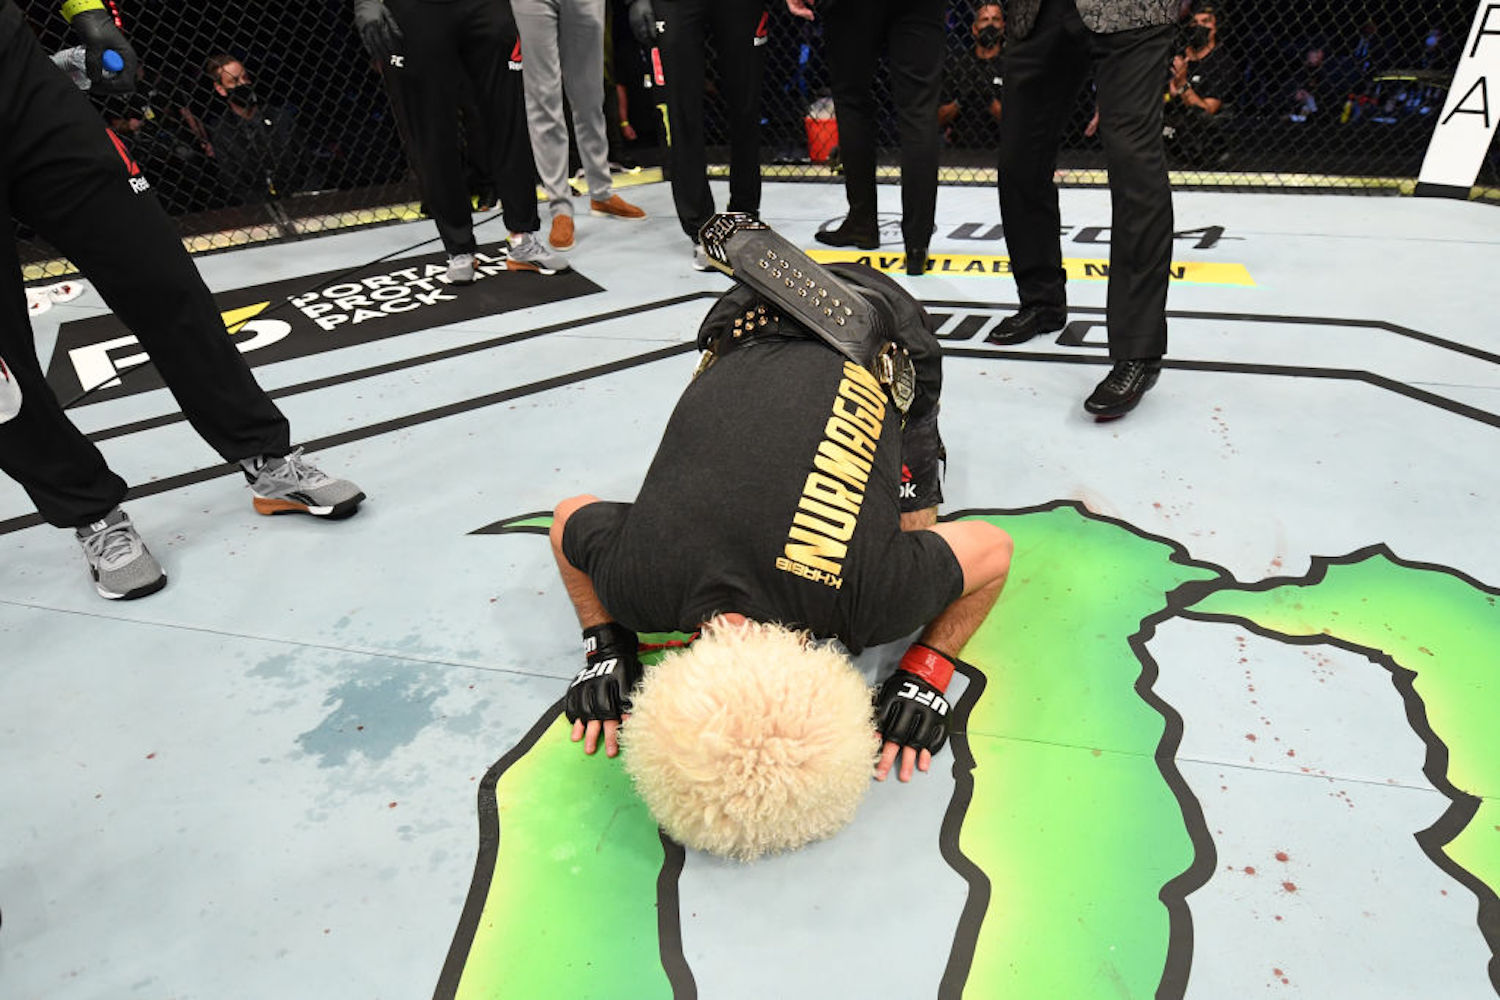 Khabib Nurmagomedov announced his retirement after defeating Justin Gaethje, and it sounds like he won't be going back on that decision.